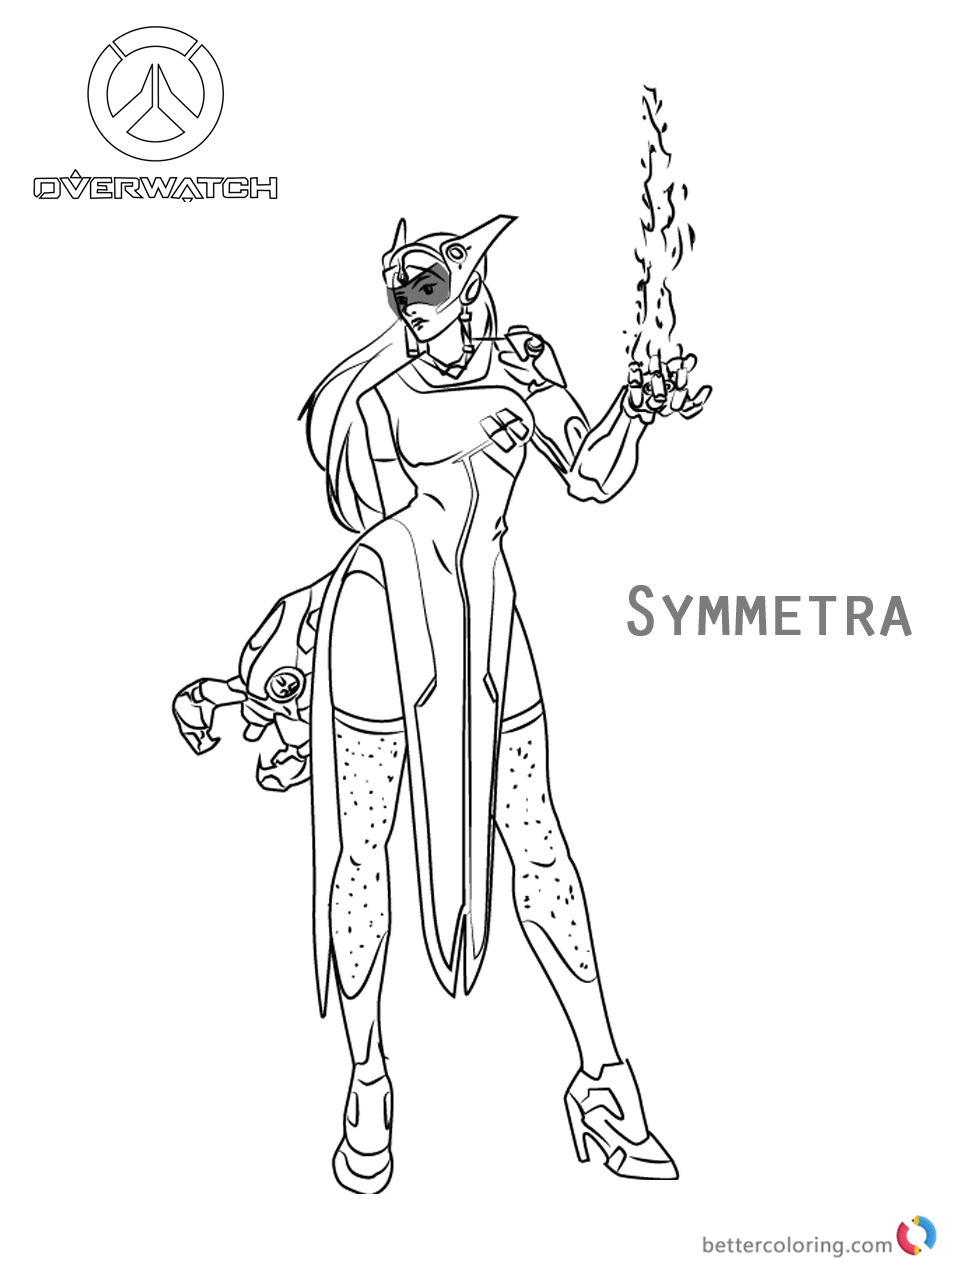 Black Home Wallpaper Symmetra From Overwatch Coloring Pages Free Printable